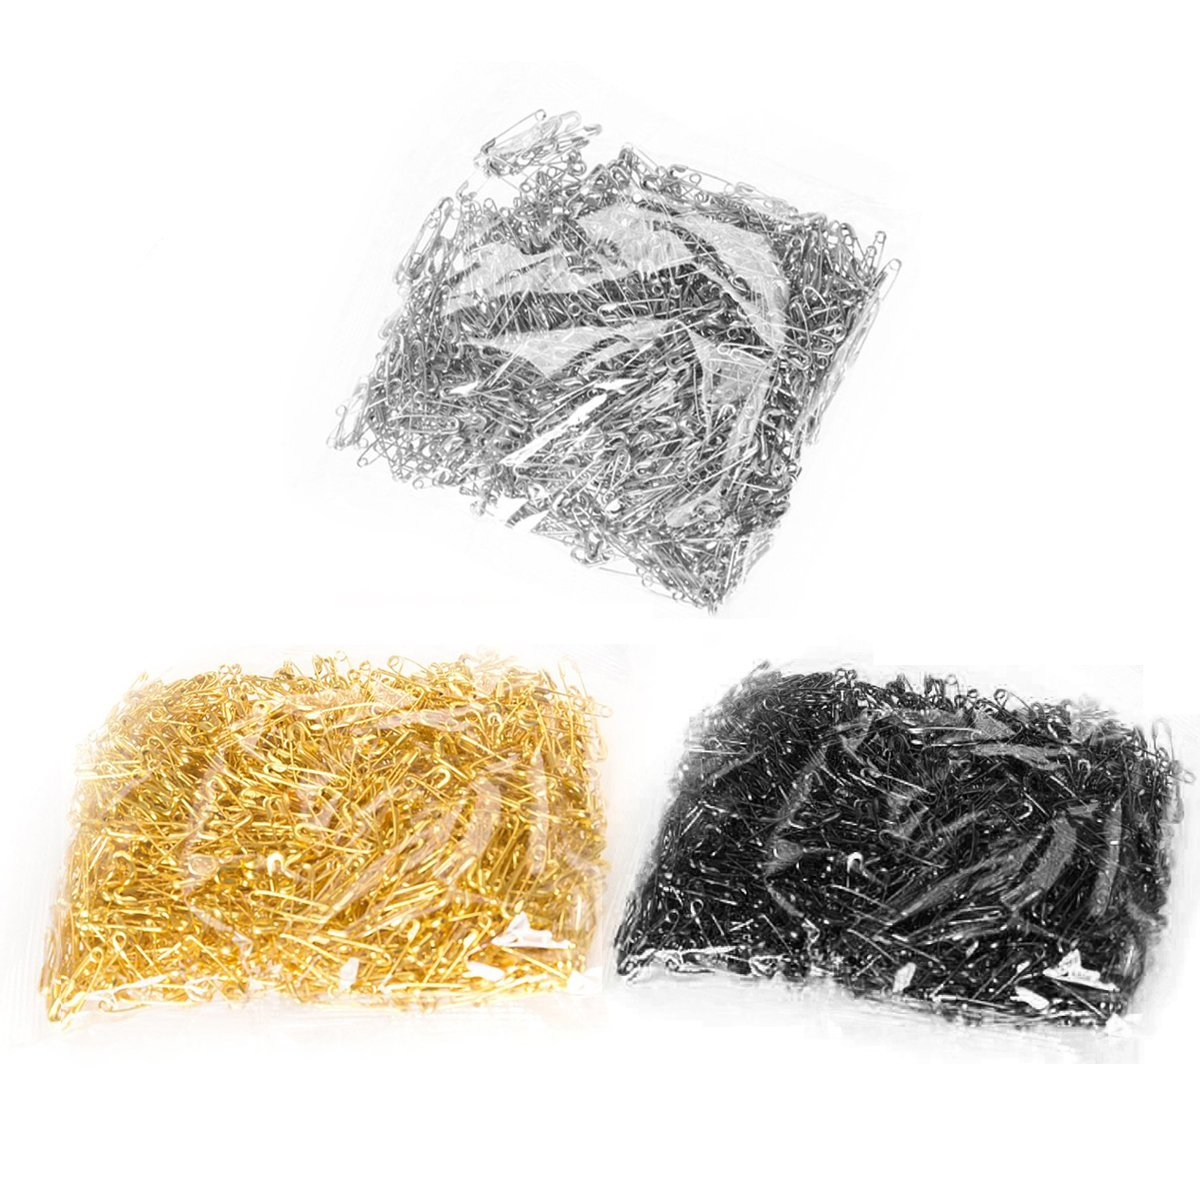 Gold 500Pcs Metal Gourd Safety Pins Small Steel Wire Craft Clothing Tag Pin Clip Buttons Clothing Trimming Fastener Tool DIY Home Accessories